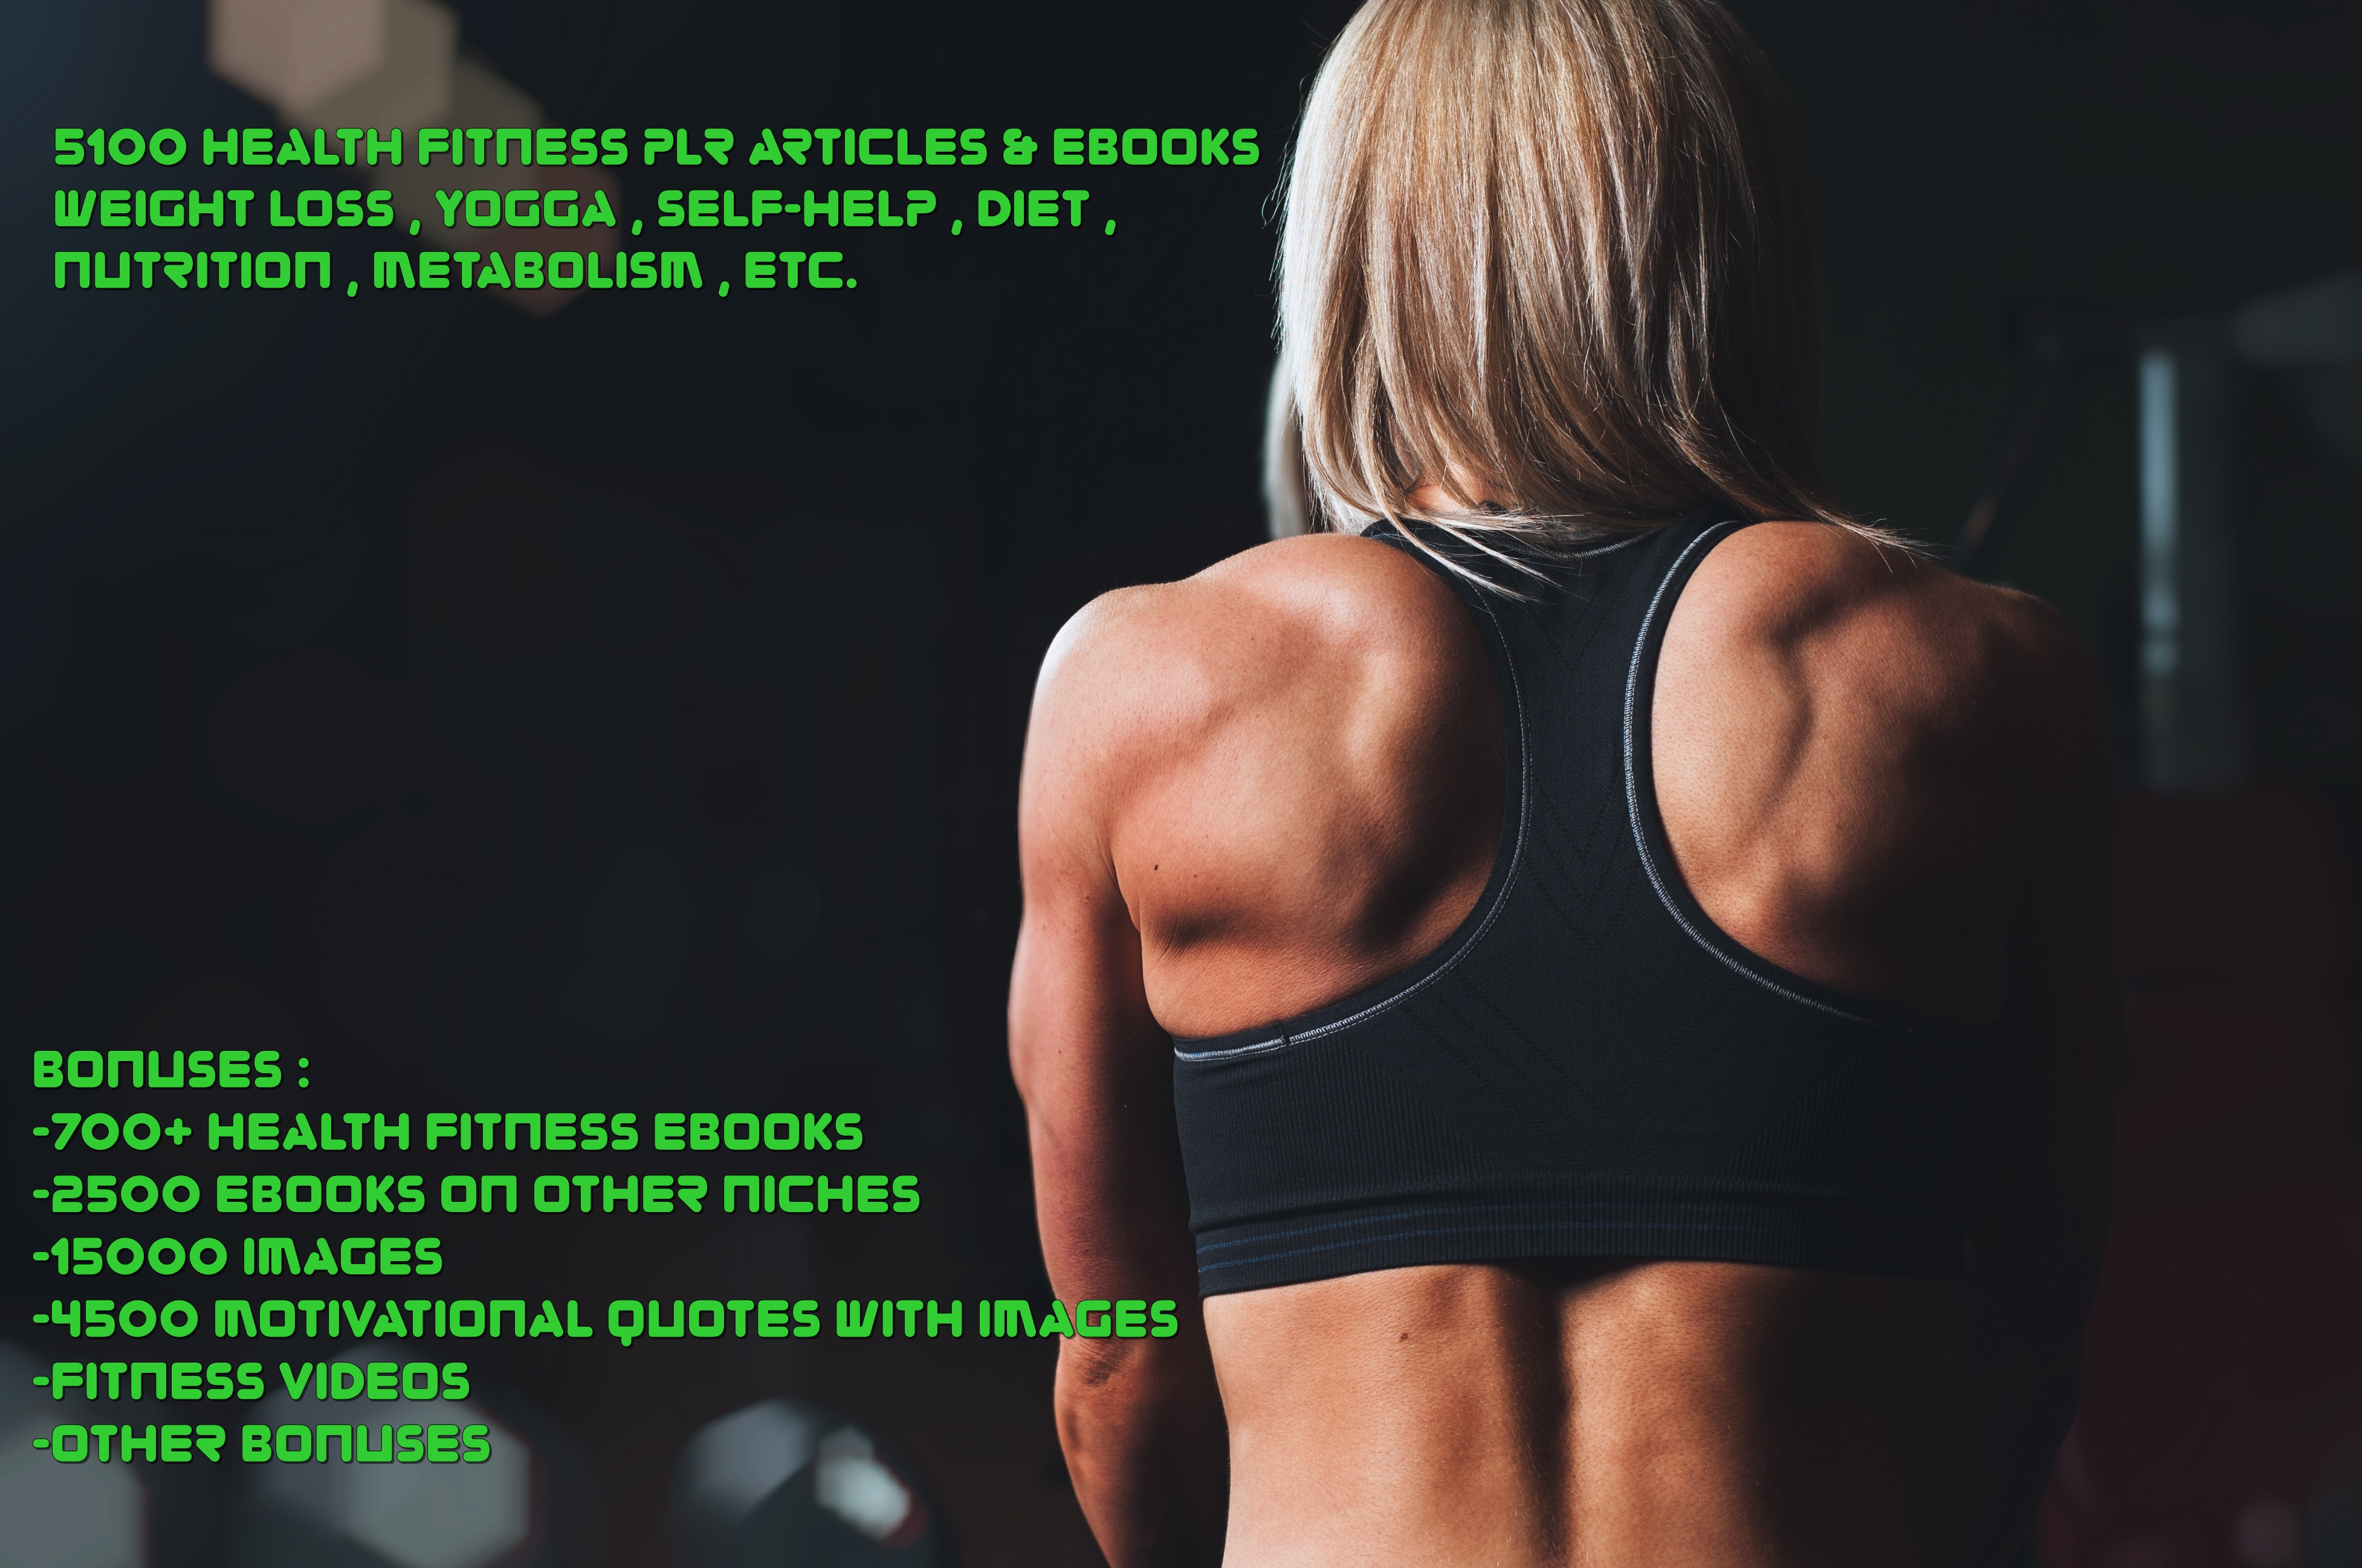 51000 health fitness plr articles,  images,  ebooks